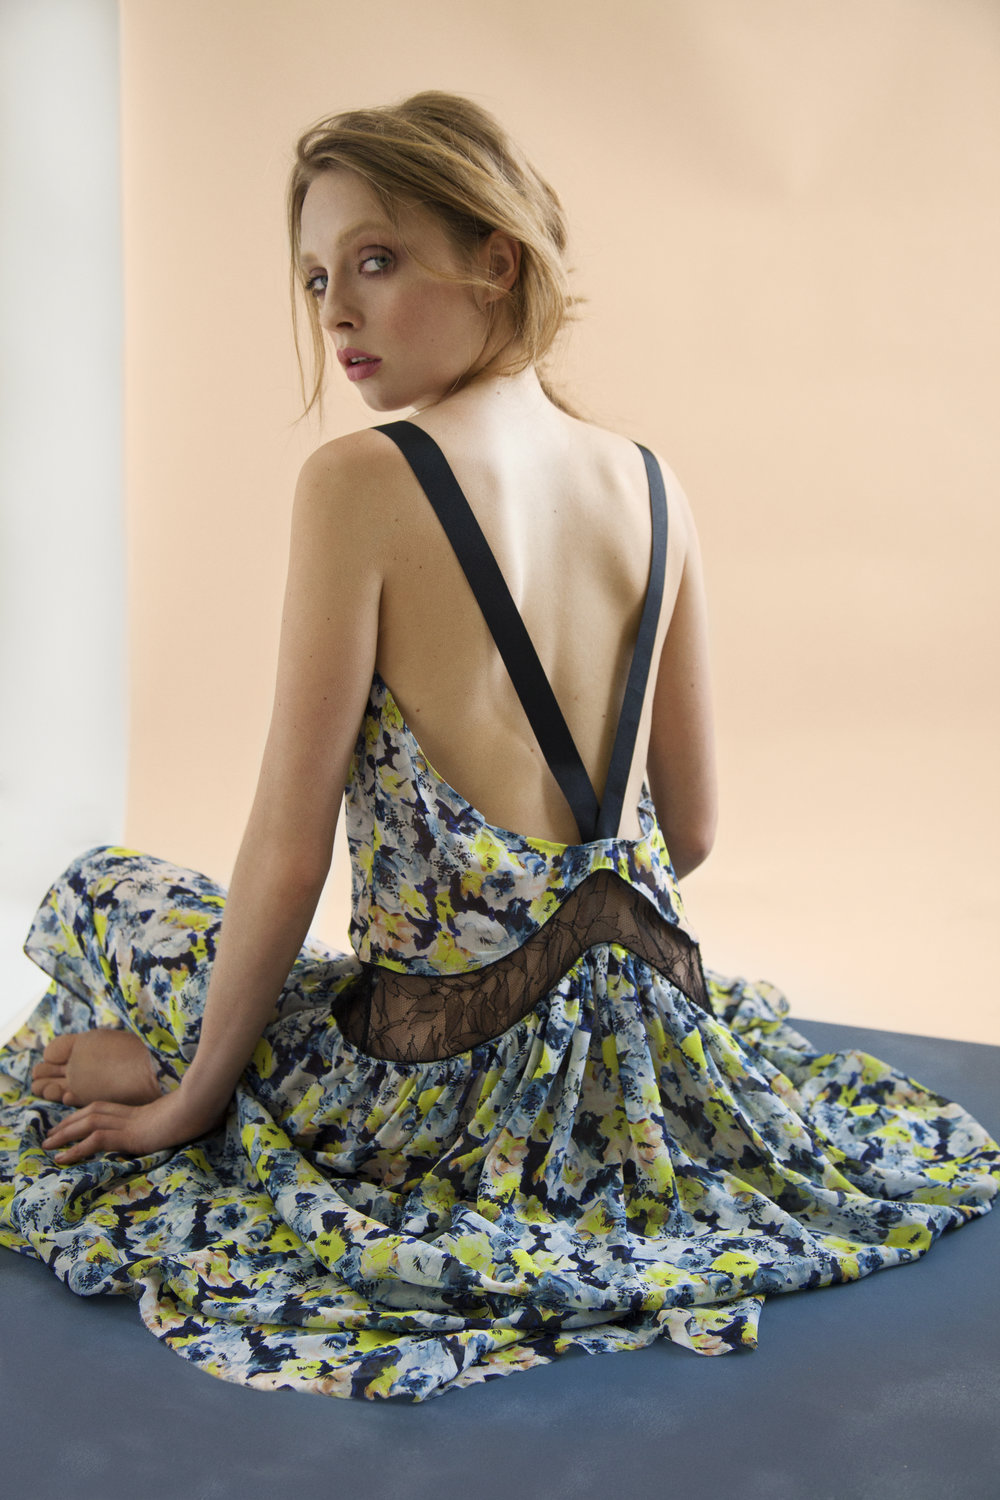 Stunning Silk Georgette Maxi Slip in Mariposa Print by Violet & Wren.  Image Courtesy of Anthropologie